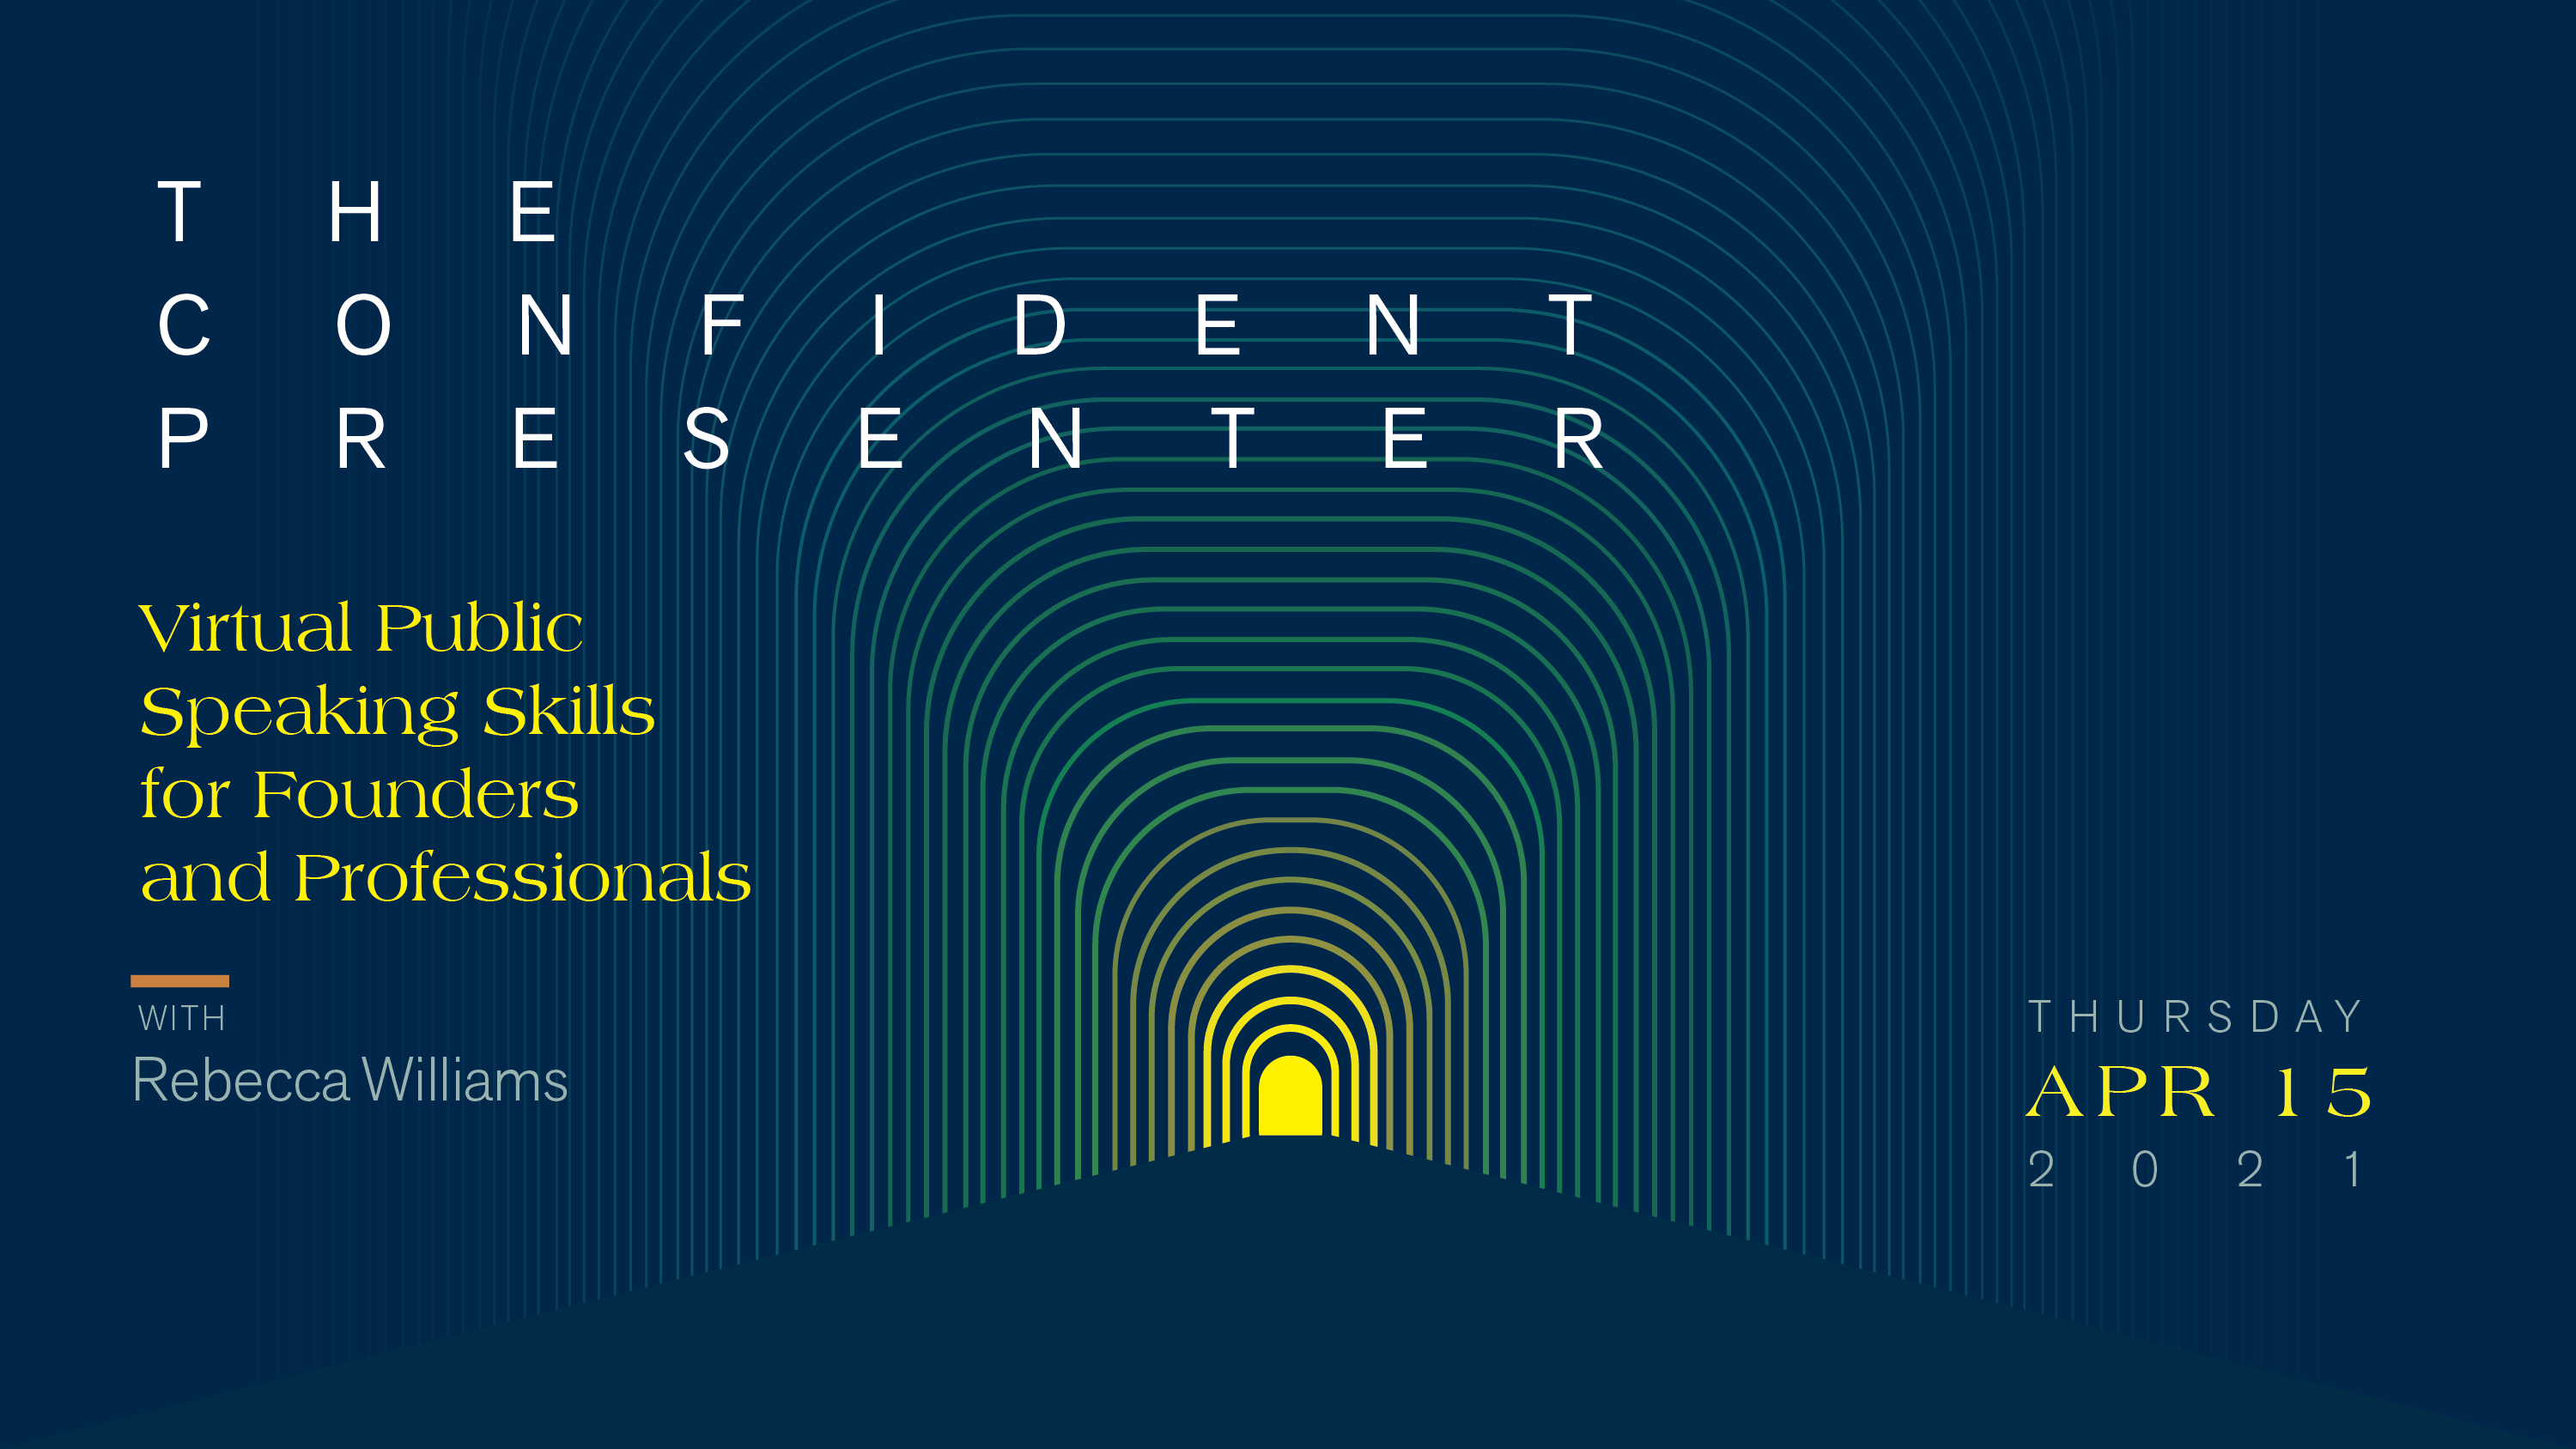 THE CONFIDENT PRESENTER: Virtual Public Speaking Skills for Founders and Professionals